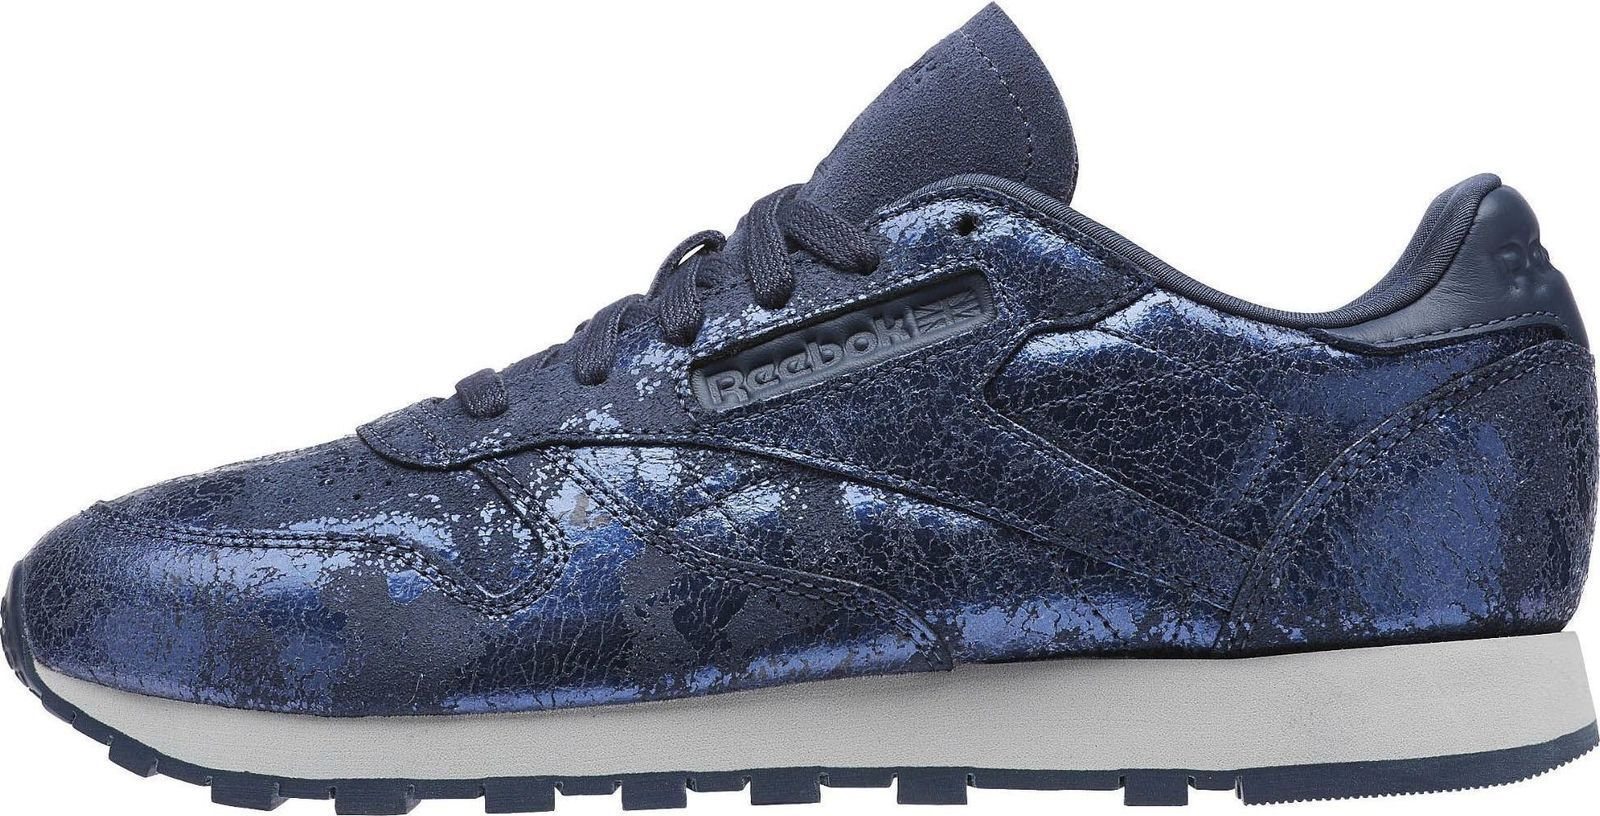 Reebok Classic CL Leather Textural HYPE Sizes 5-7 bluee   BNIB BS6784